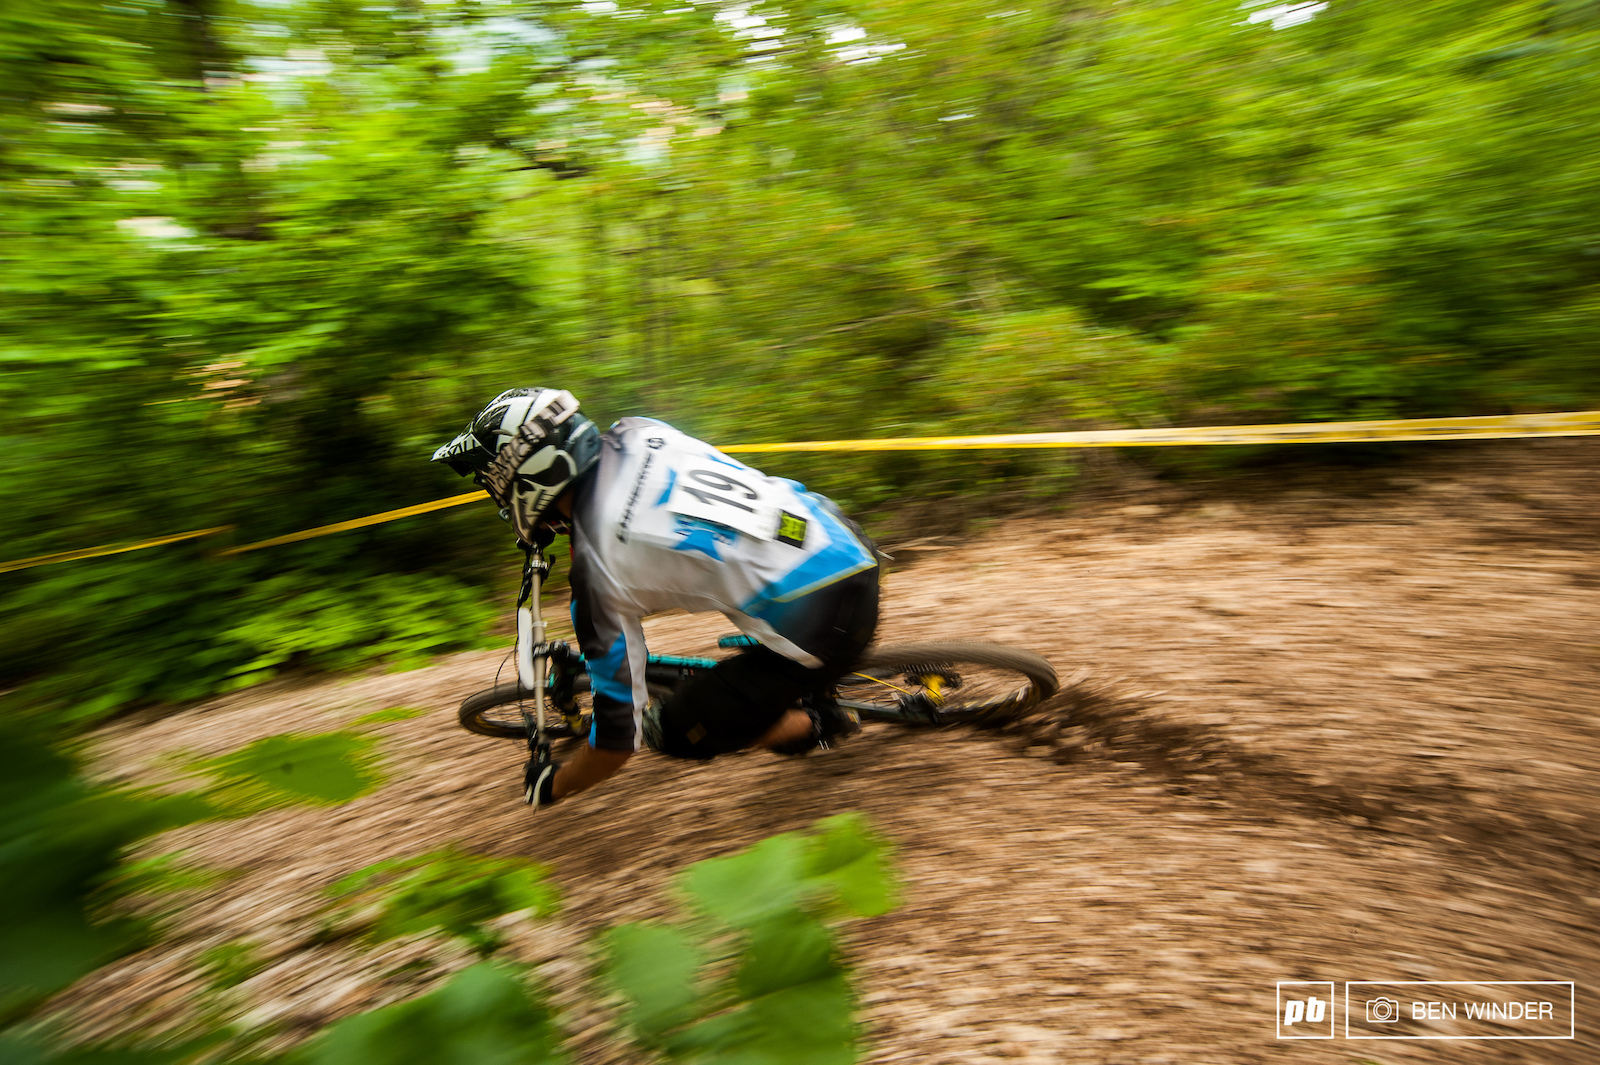 After each rider hit this corner you would hear a wooo or yeee a super fun section of trail.